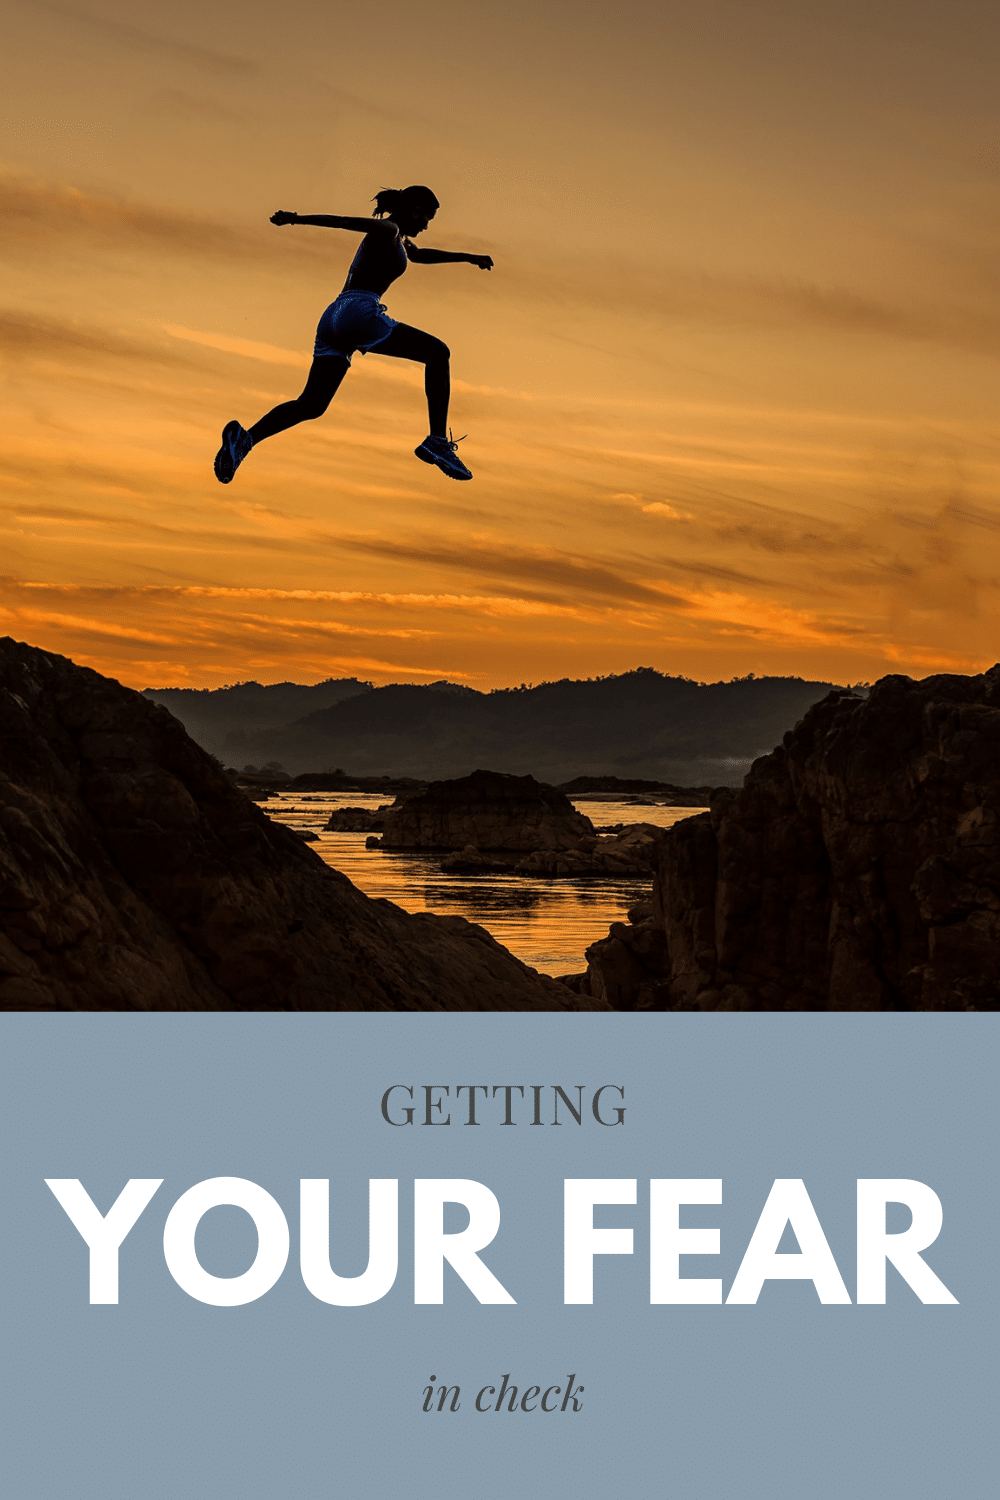 Getting your fear in check